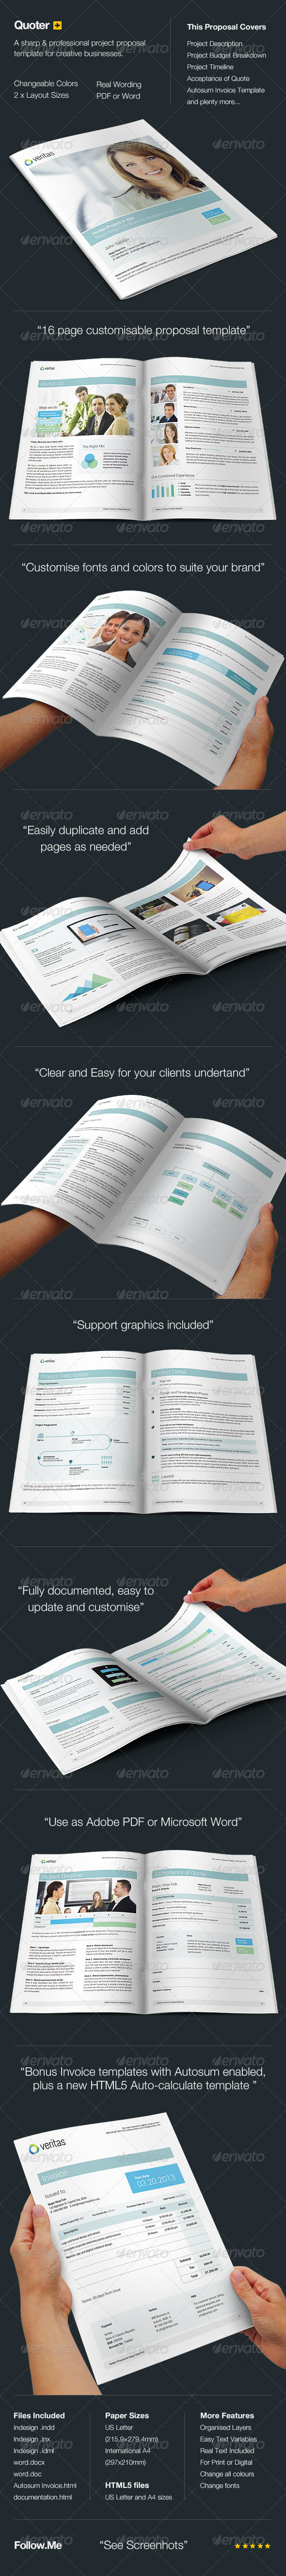 GraphicRiver Quoter Proposal & Invoice Template 4429202